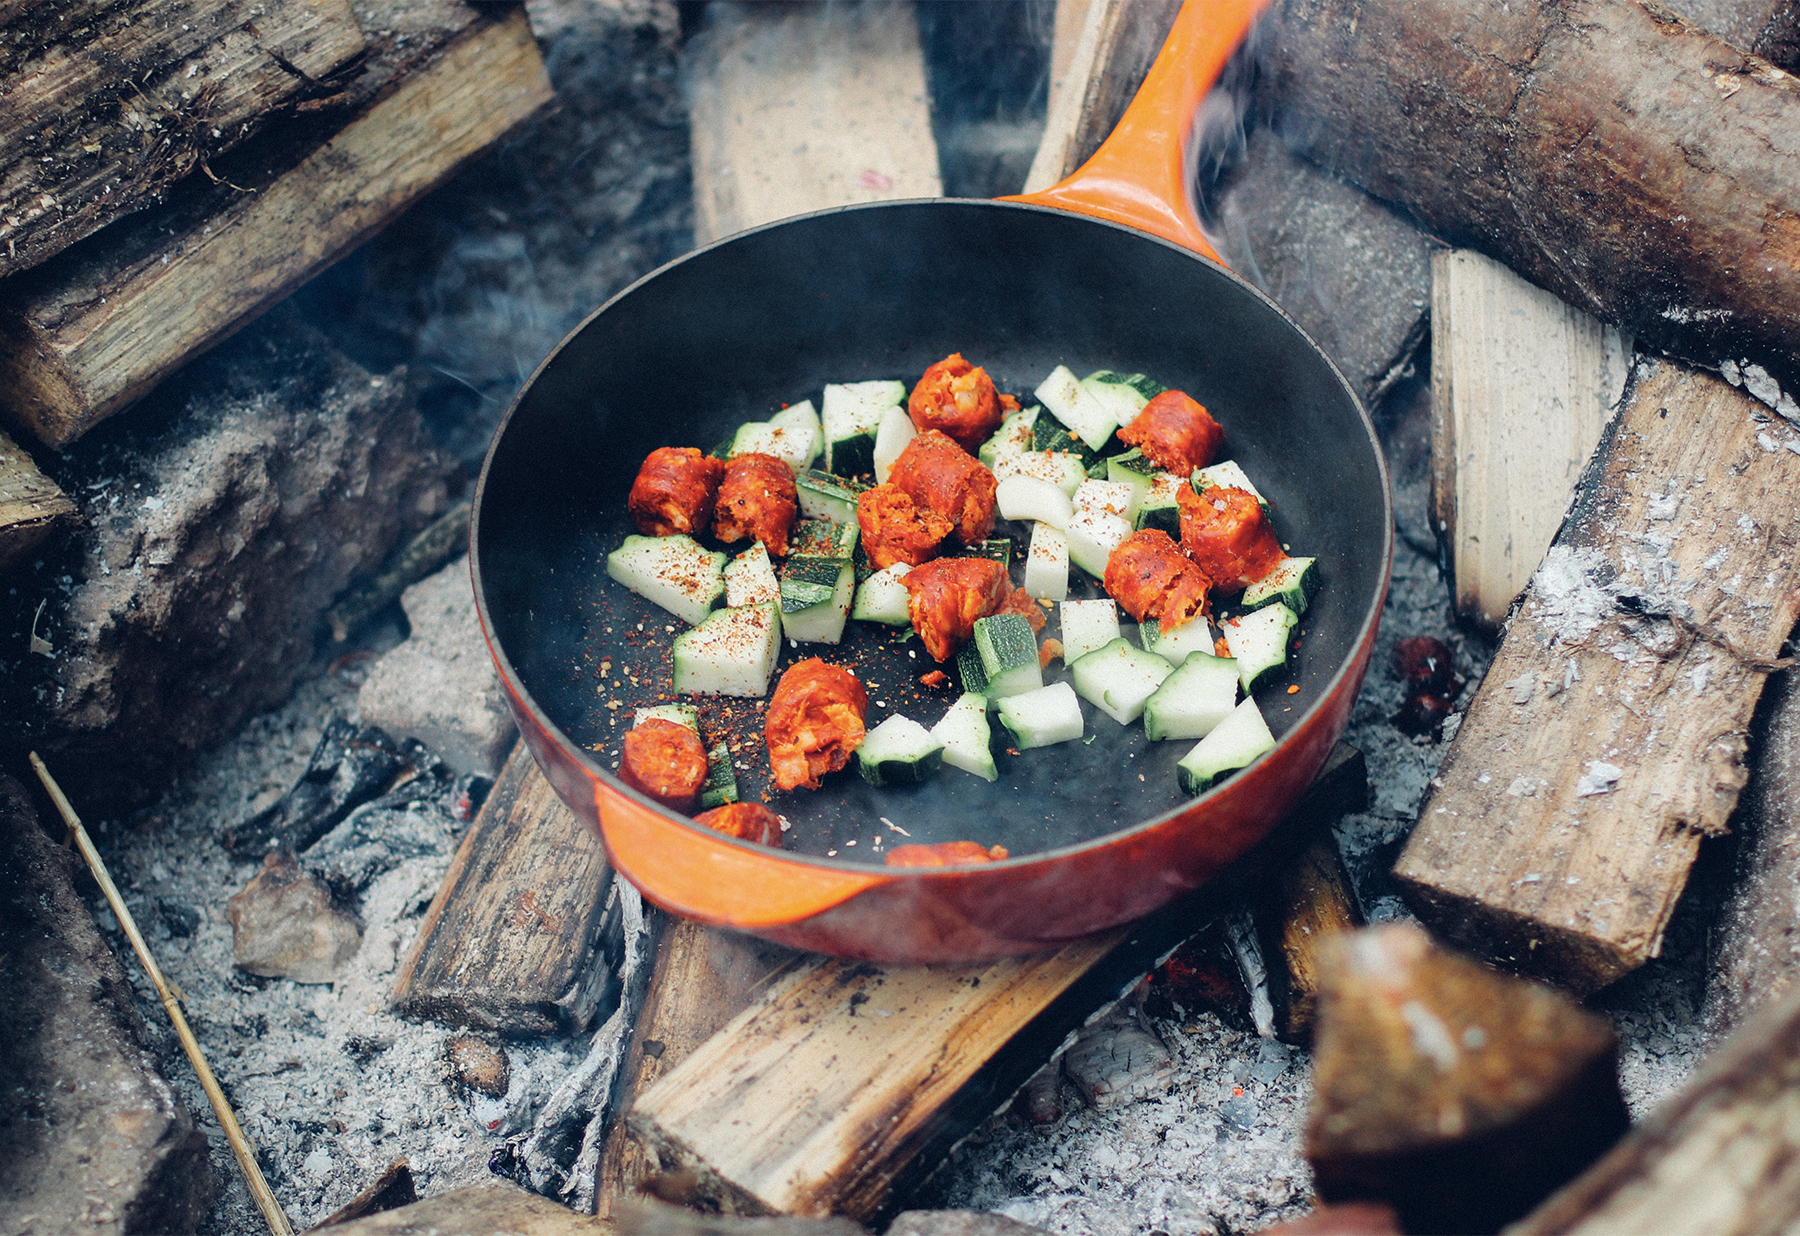 Camping Food That 7 Outdoor Experts Swear By Greatist